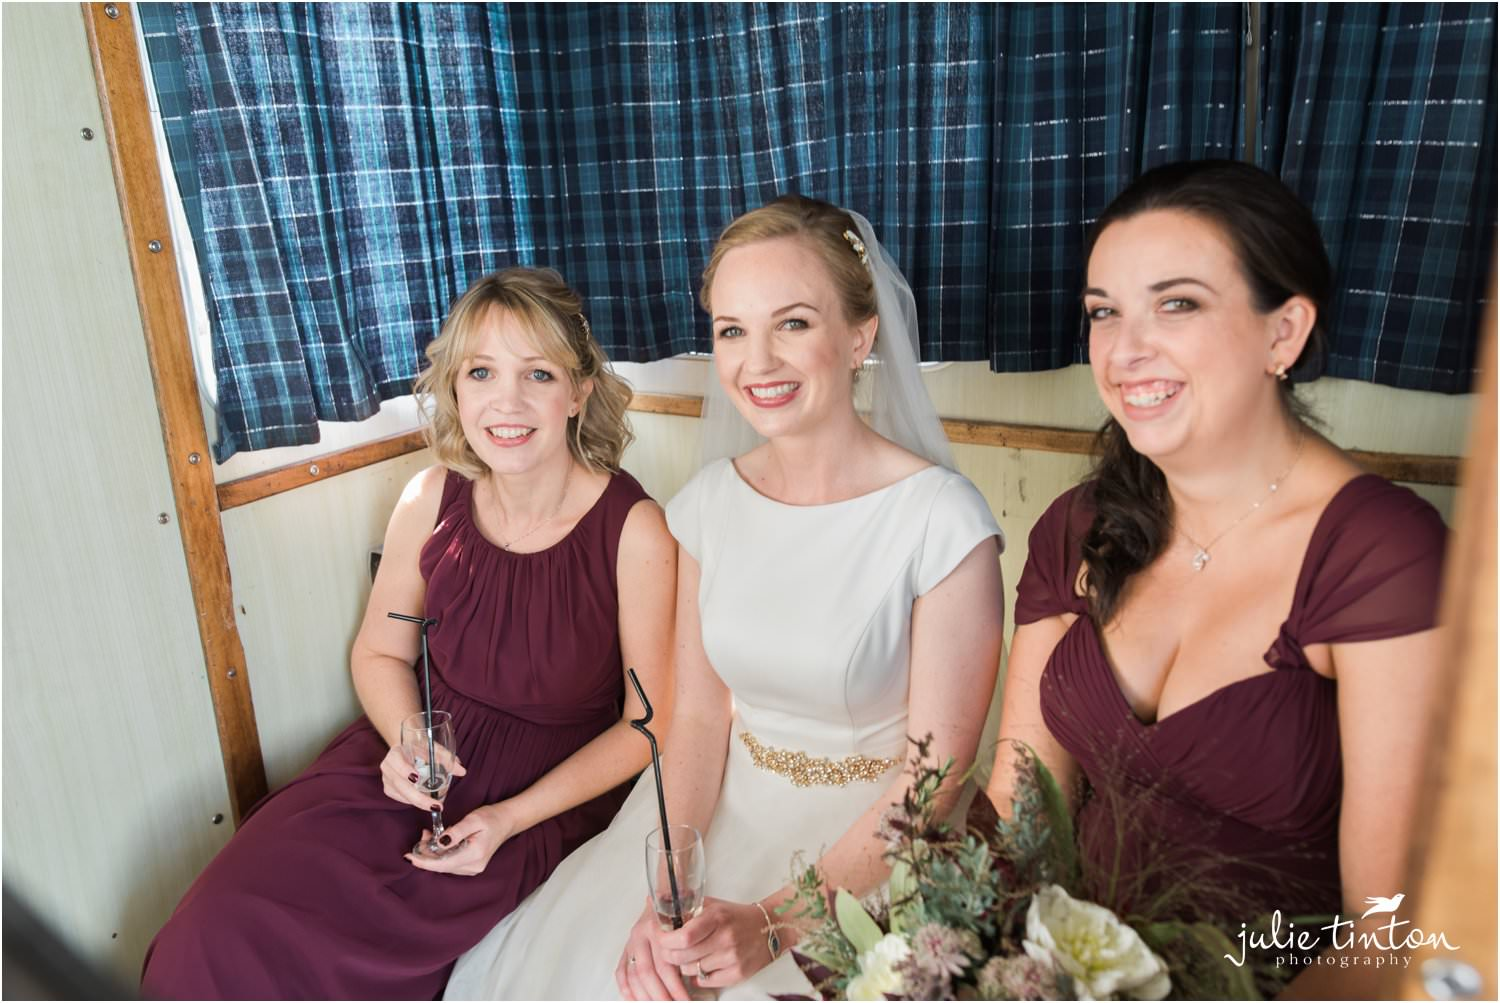 Bride and bridesmaids in Maid of Forth cabin crossing to Inchcolm Island